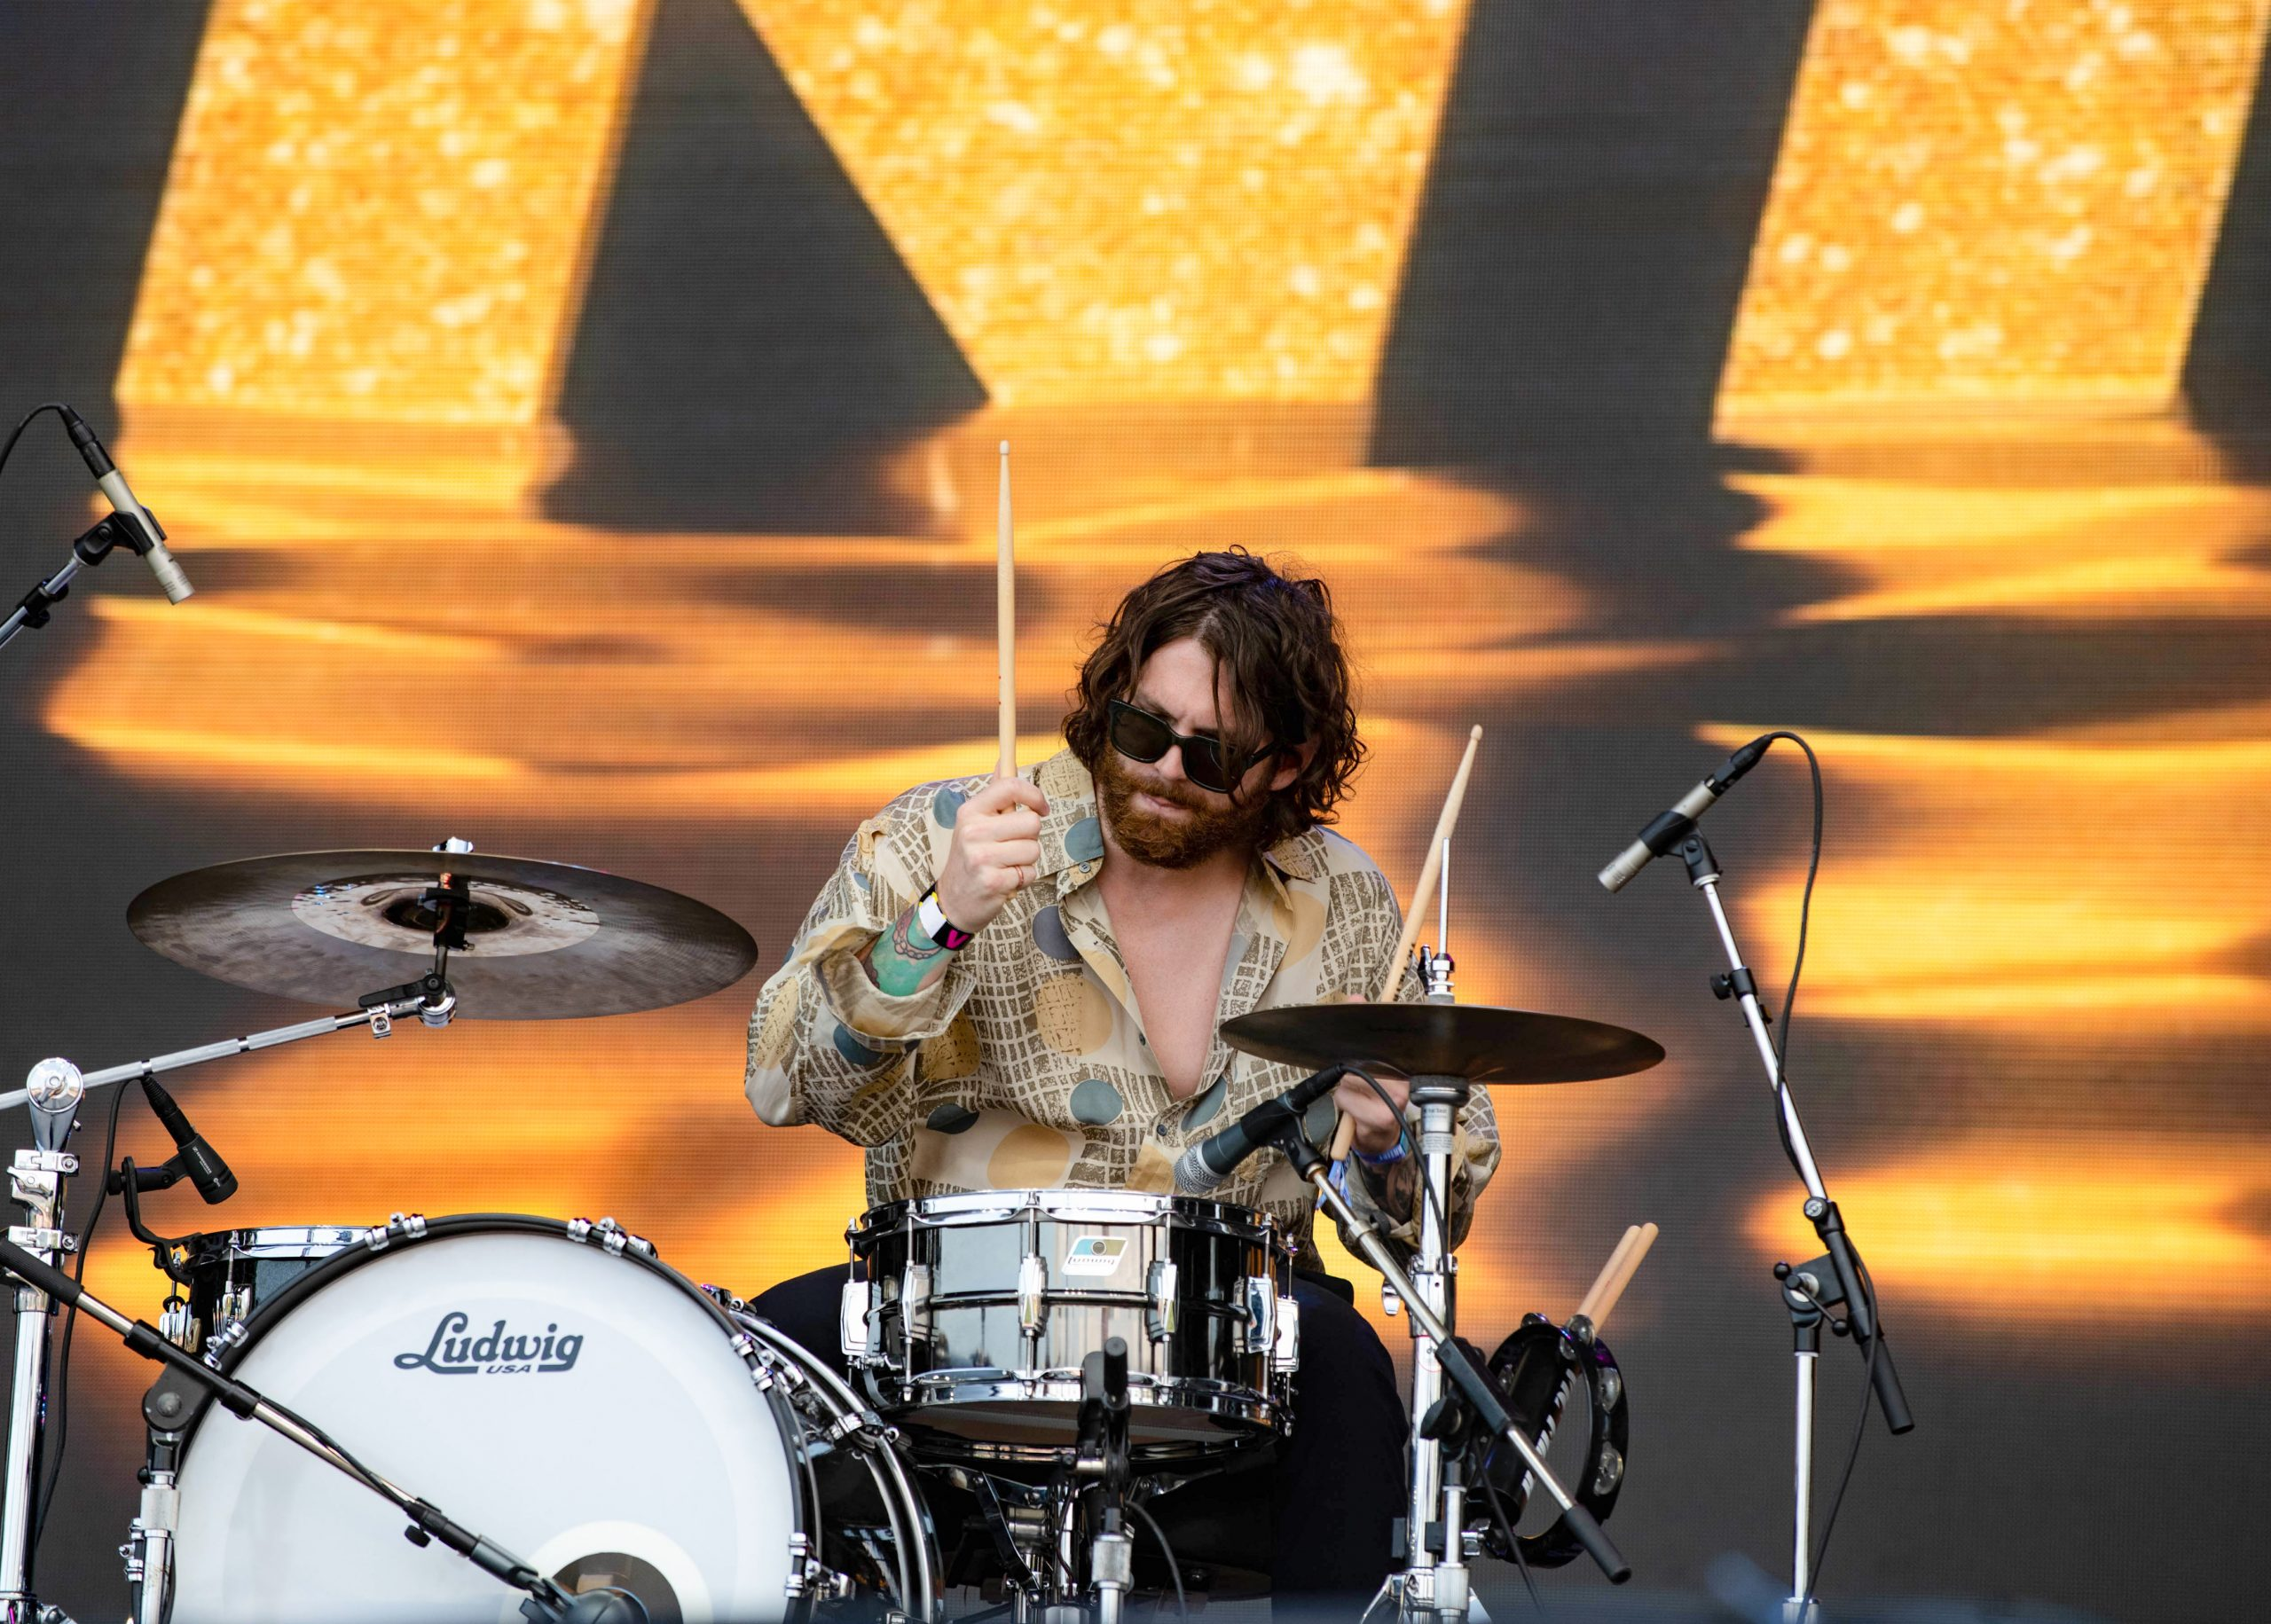 Cannons - Lollapalooza - Chicago, IL - 07/31/2021 - Photo © 2021 by: Roman Sobus